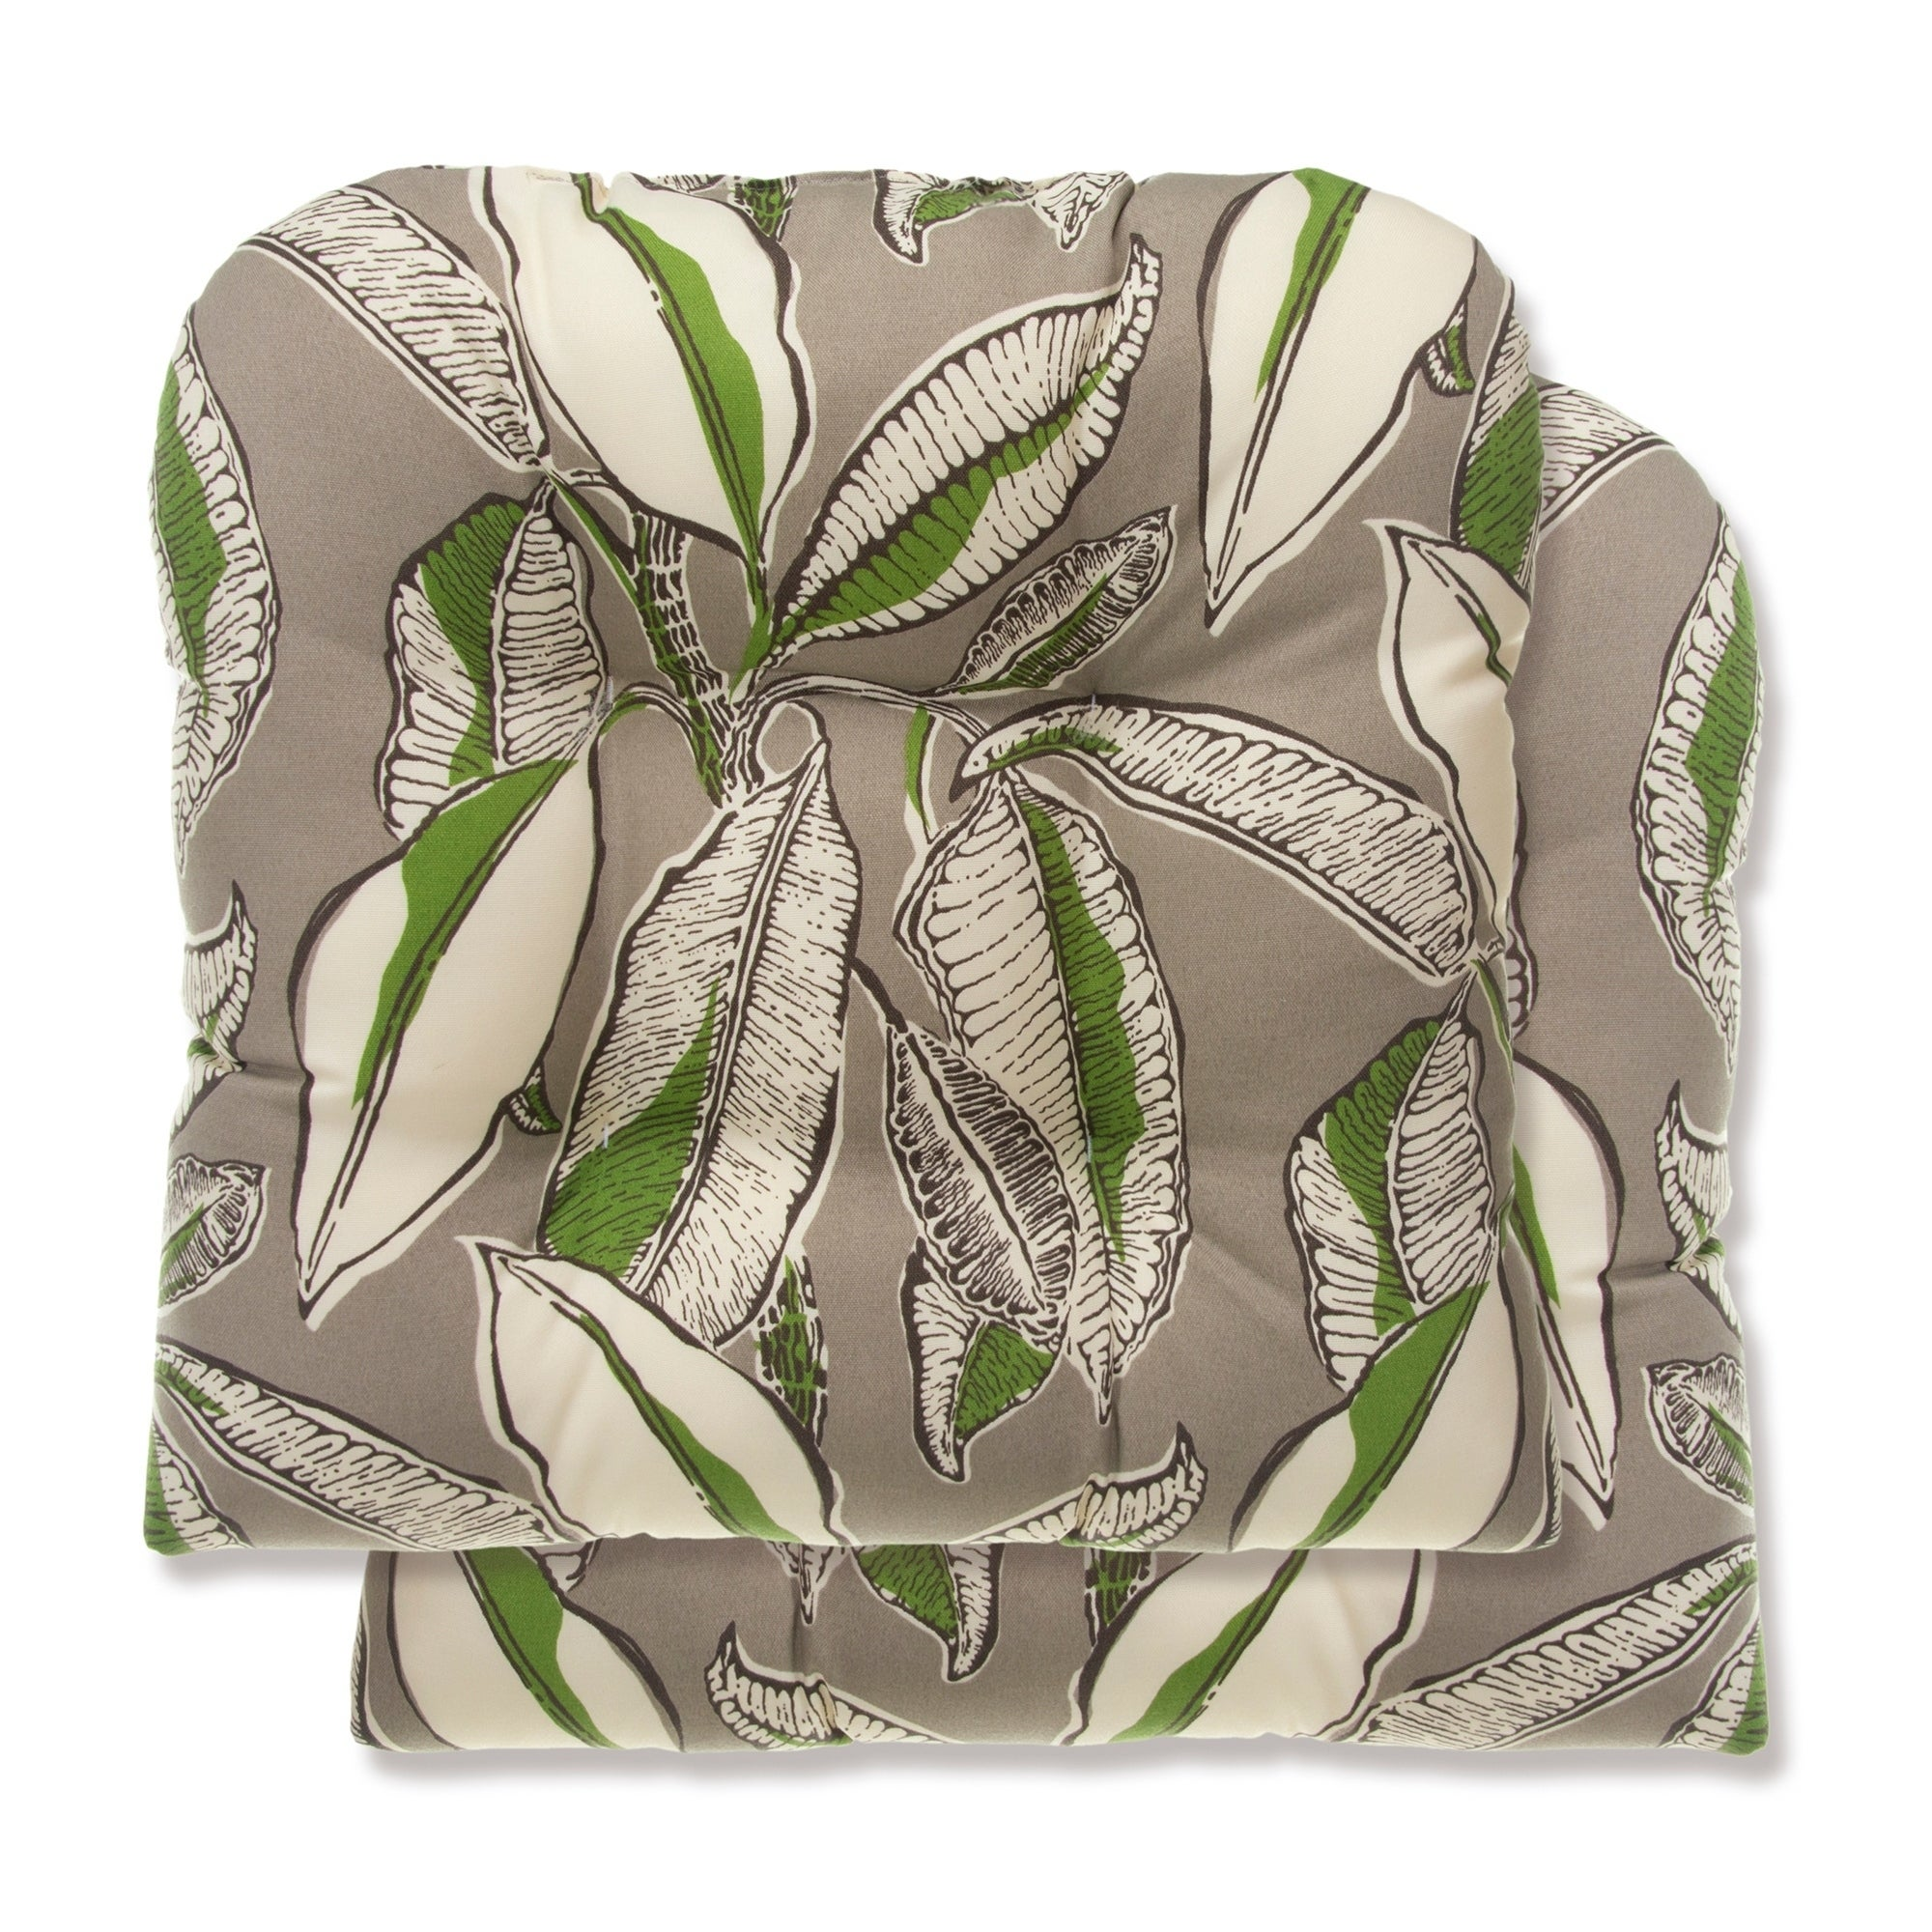 Havenside Home Glasgow Tropical Leaves Reversible Tufted Wicker Chair Cushion Set Of 2